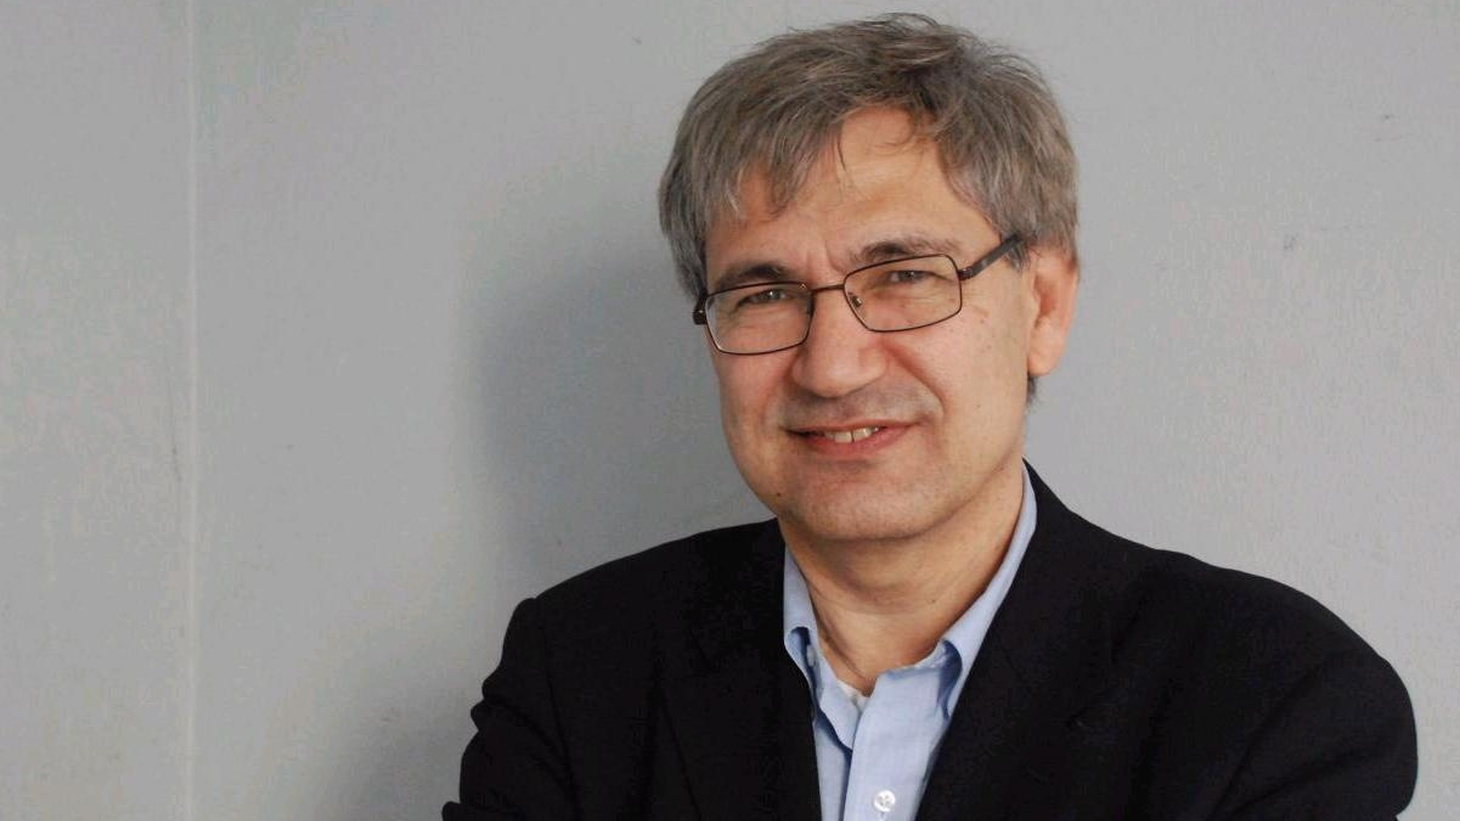 The Museum of Innocence (Knopf) Infidelity and adultery are two of the great subjects of the novel tradition — think of Anna Karenina or Madam Bovary. In this conversation, Turkish Nobel Prize winner Orhan Pamuk discusses his own stunning contribution to this tradition.